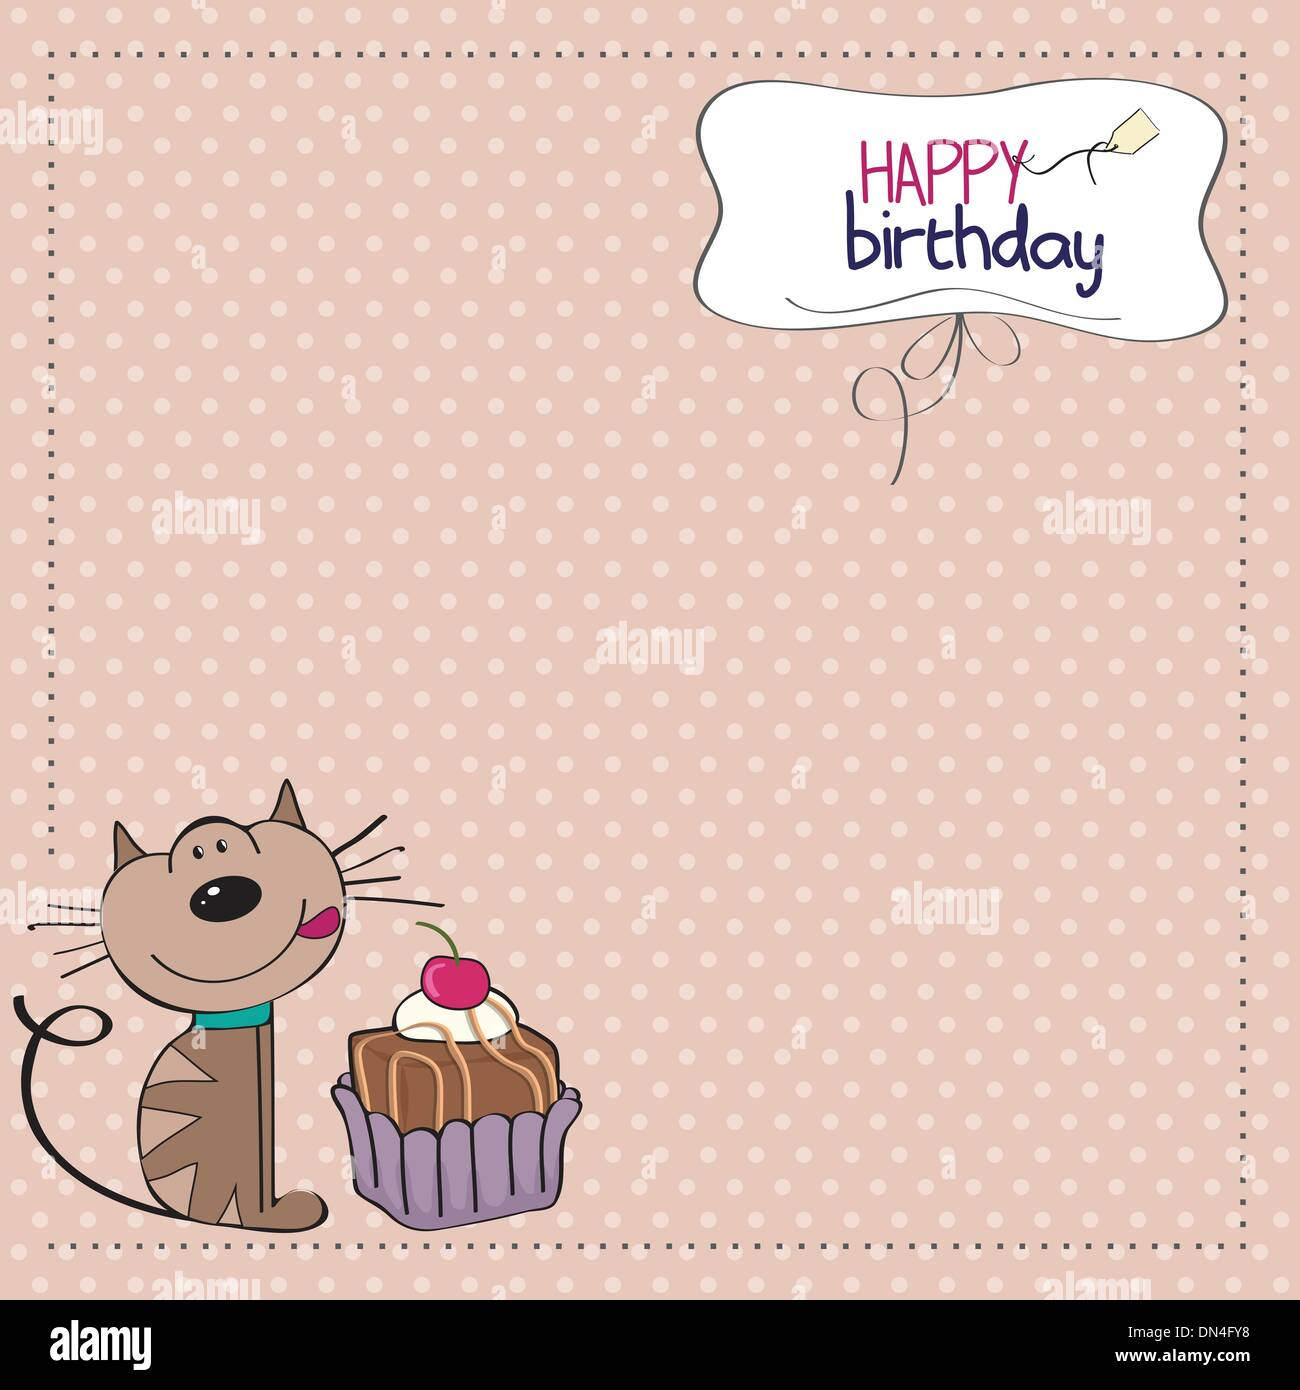 Birthday greeting card with a cat waiting to eat a cake stock vector birthday greeting card with a cat waiting to eat a cake kristyandbryce Gallery